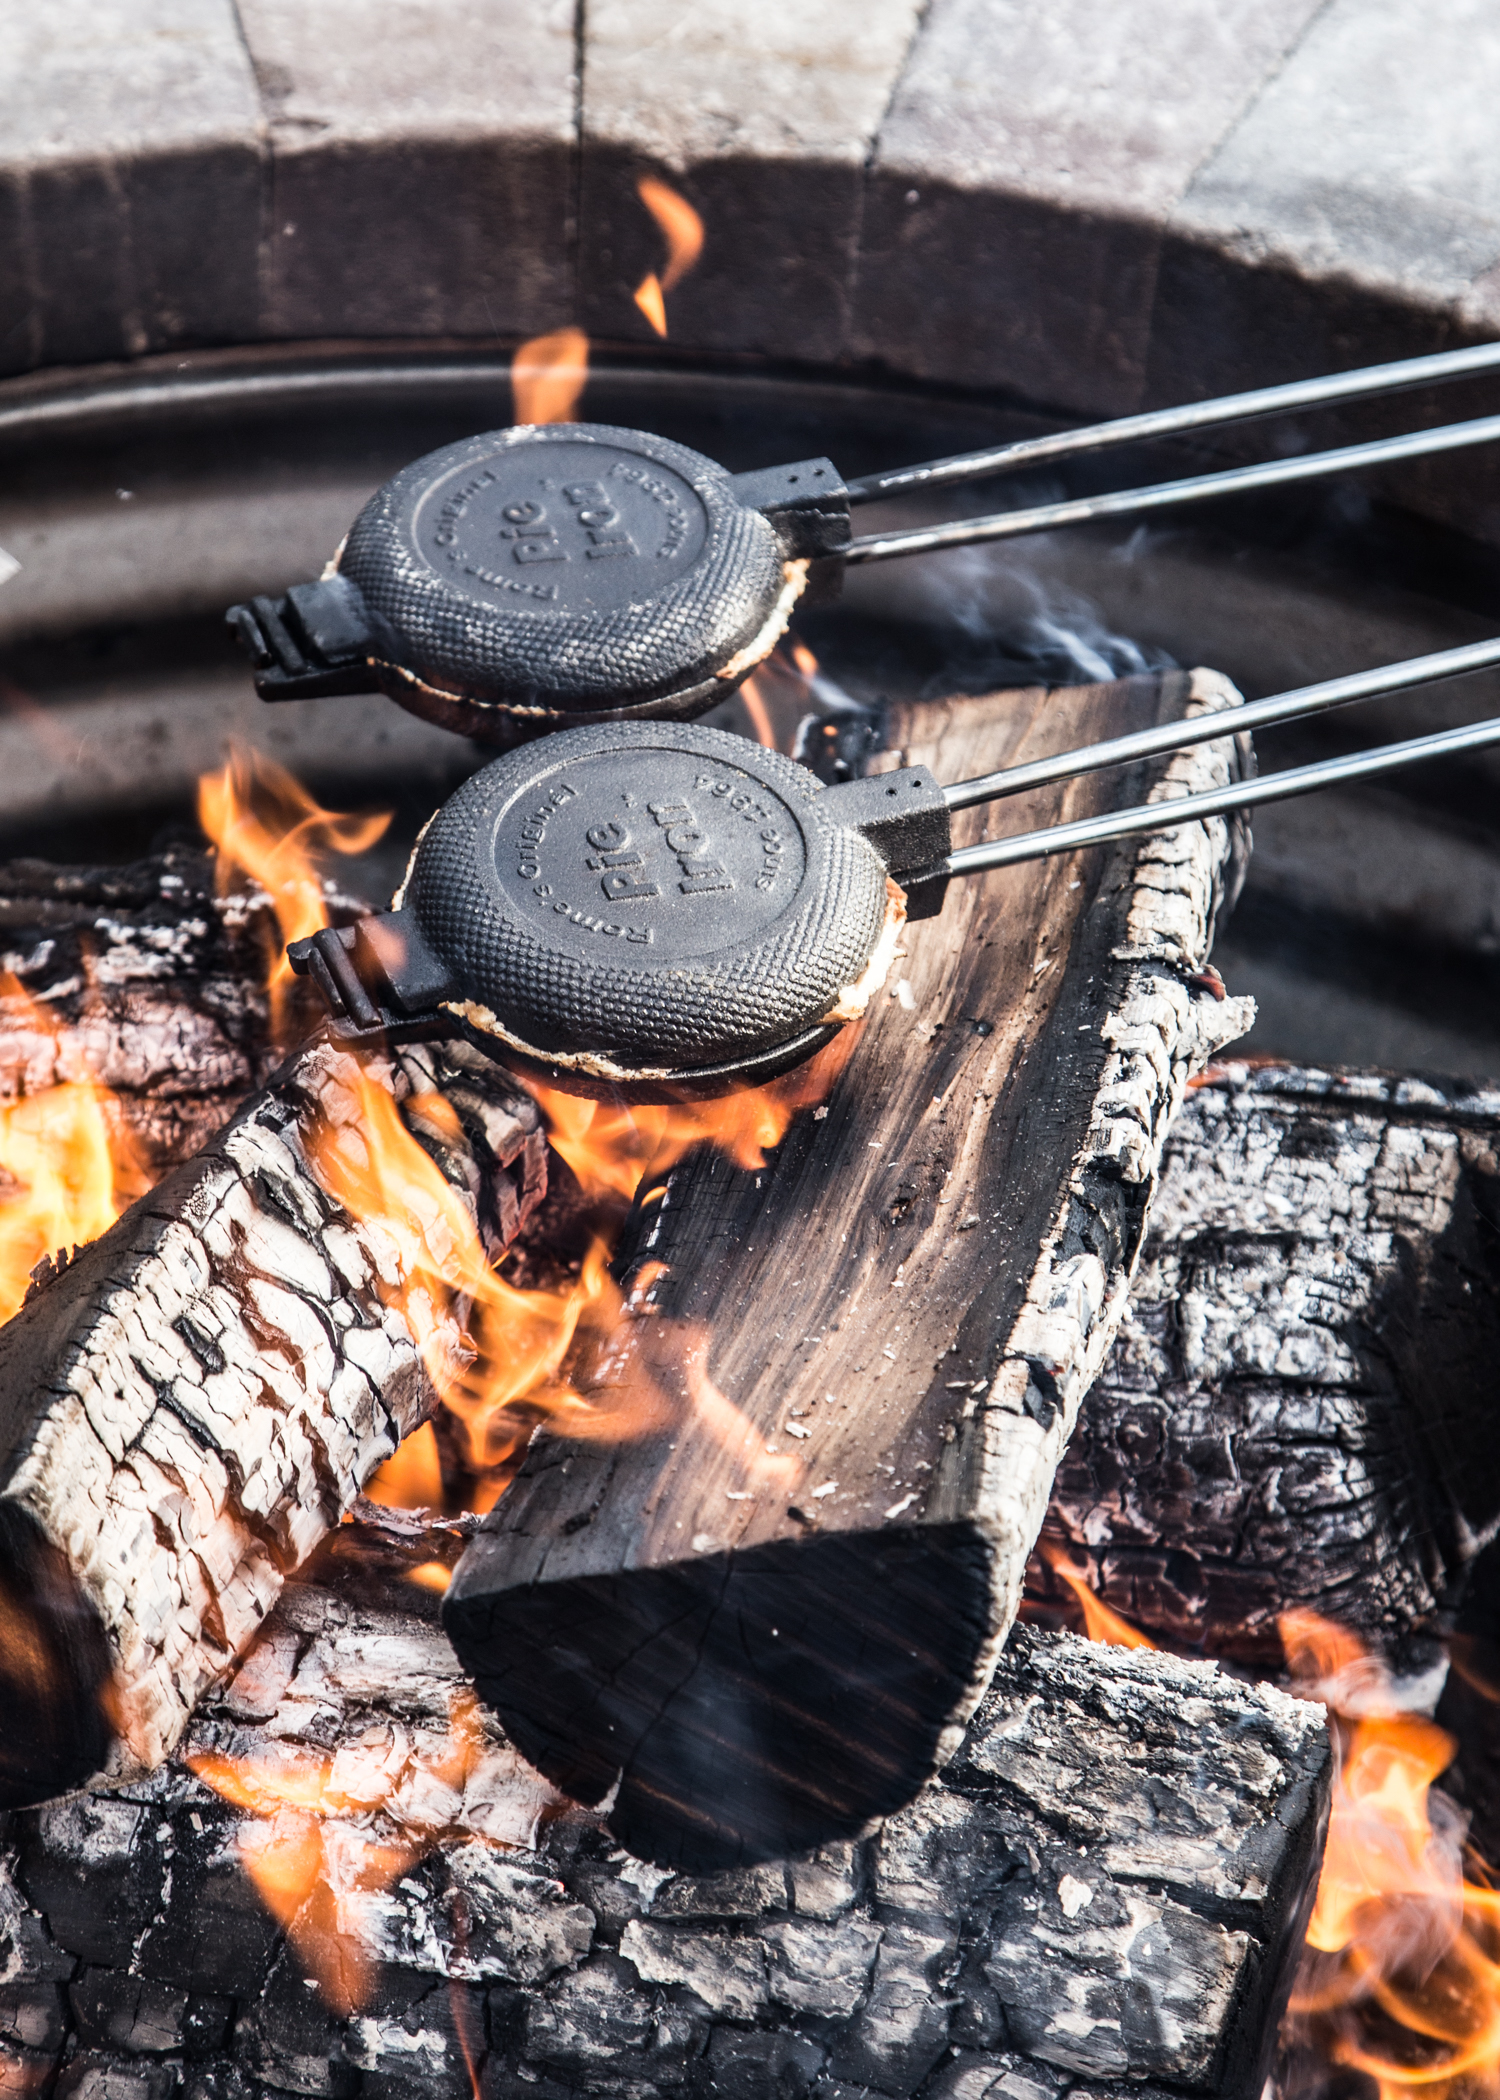 pie irons grilling paninis over a fire